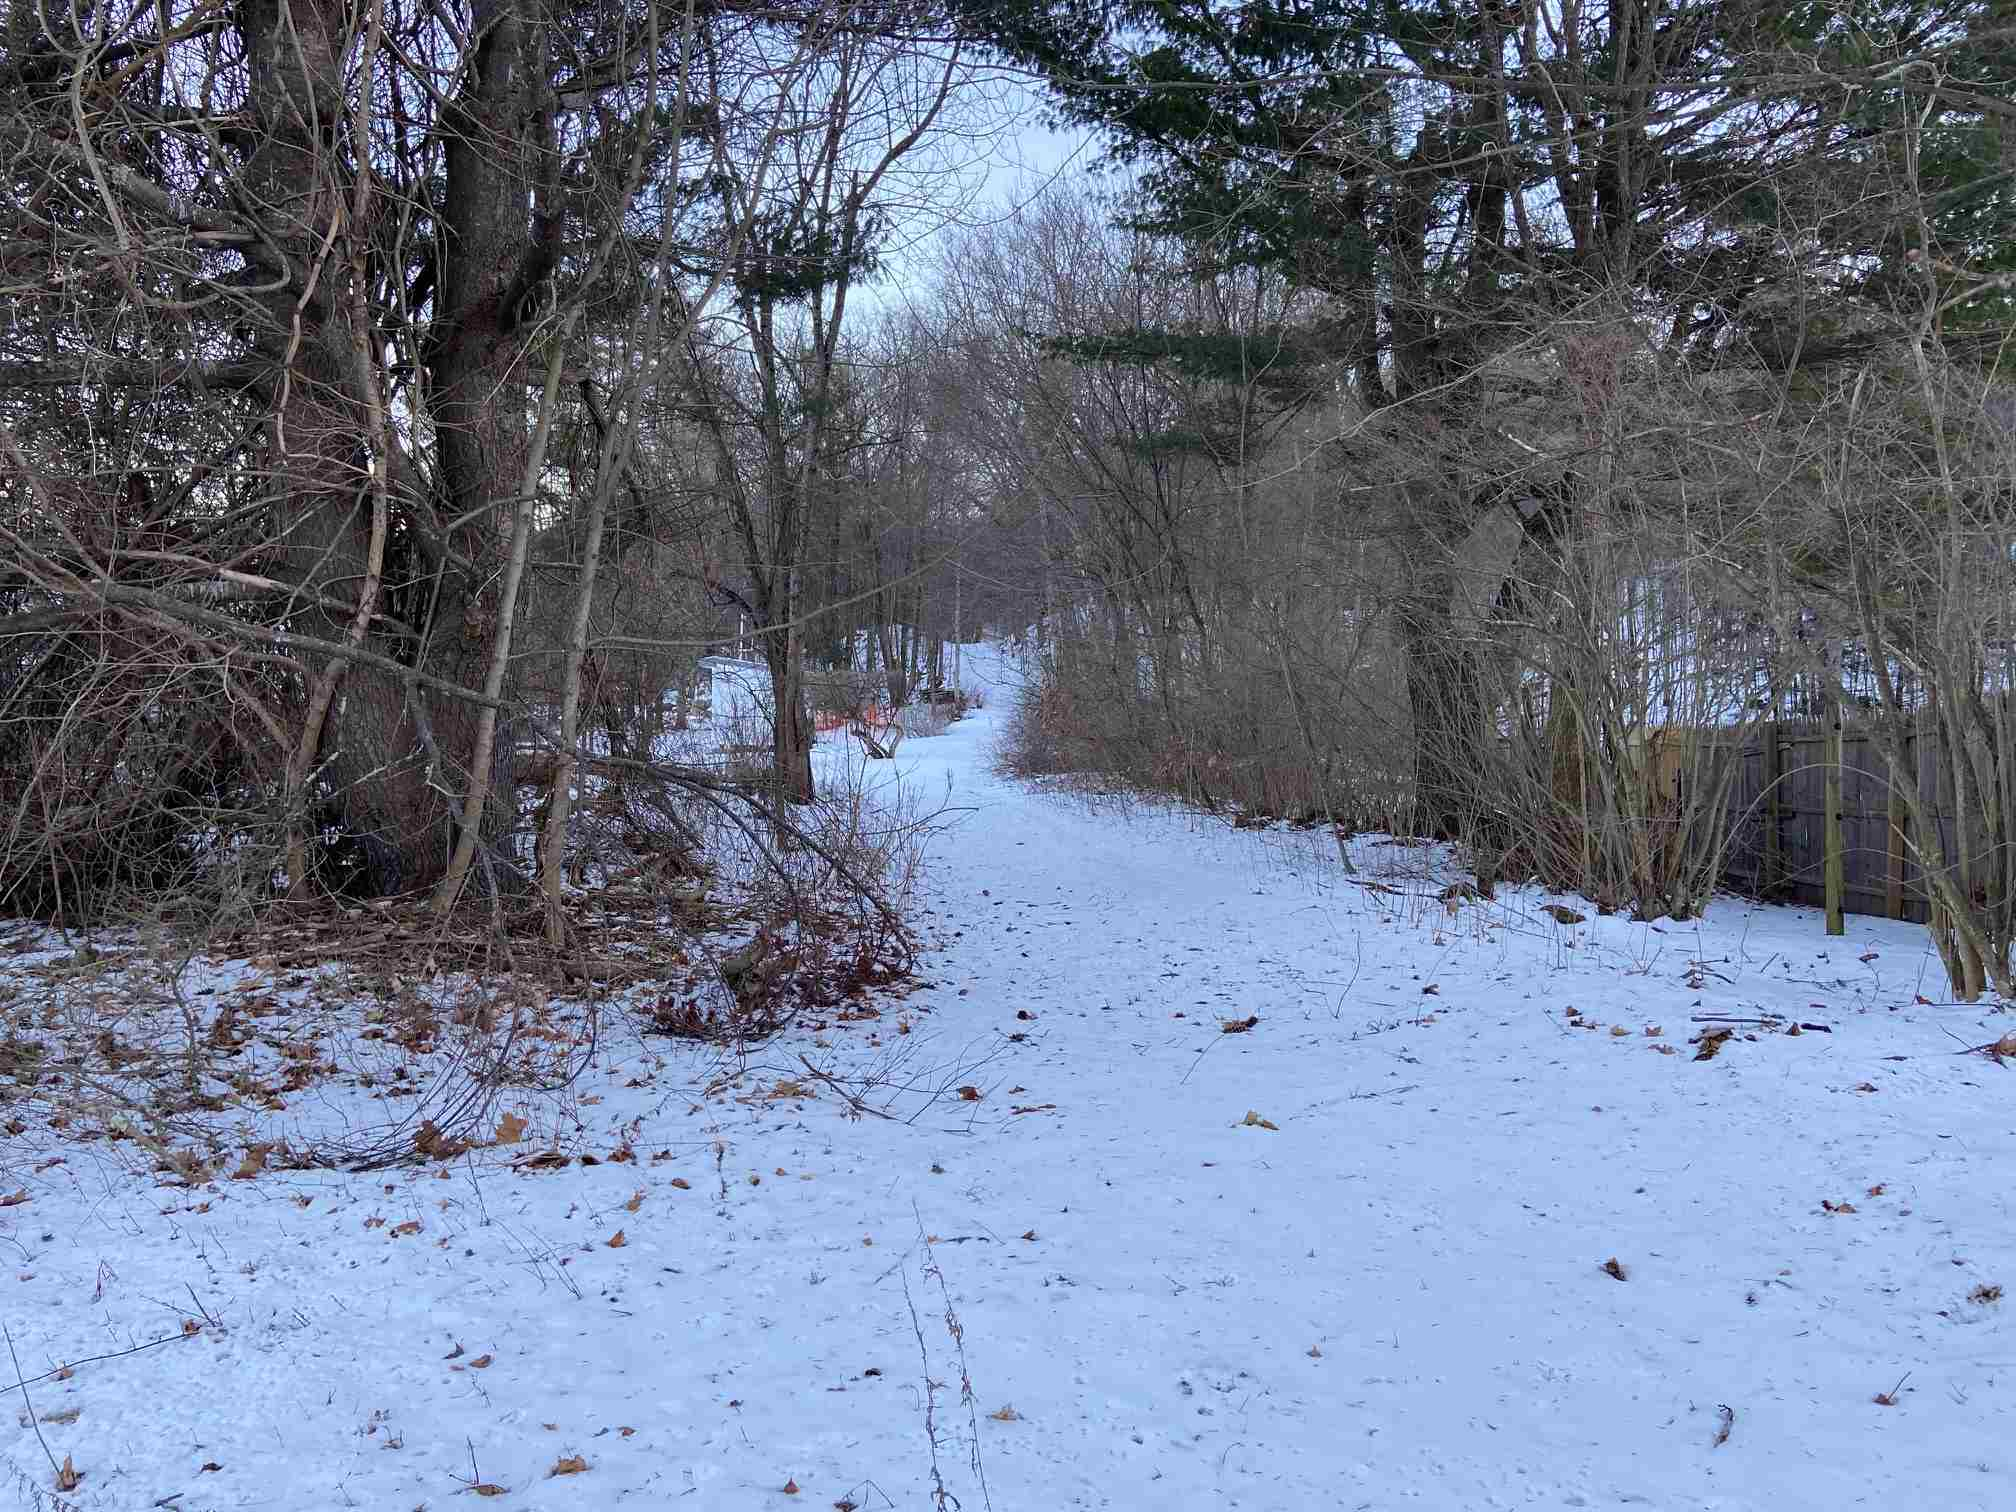 Photo of 5-44, 6-45 Kennedy Hill Road Goffstown NH 03045